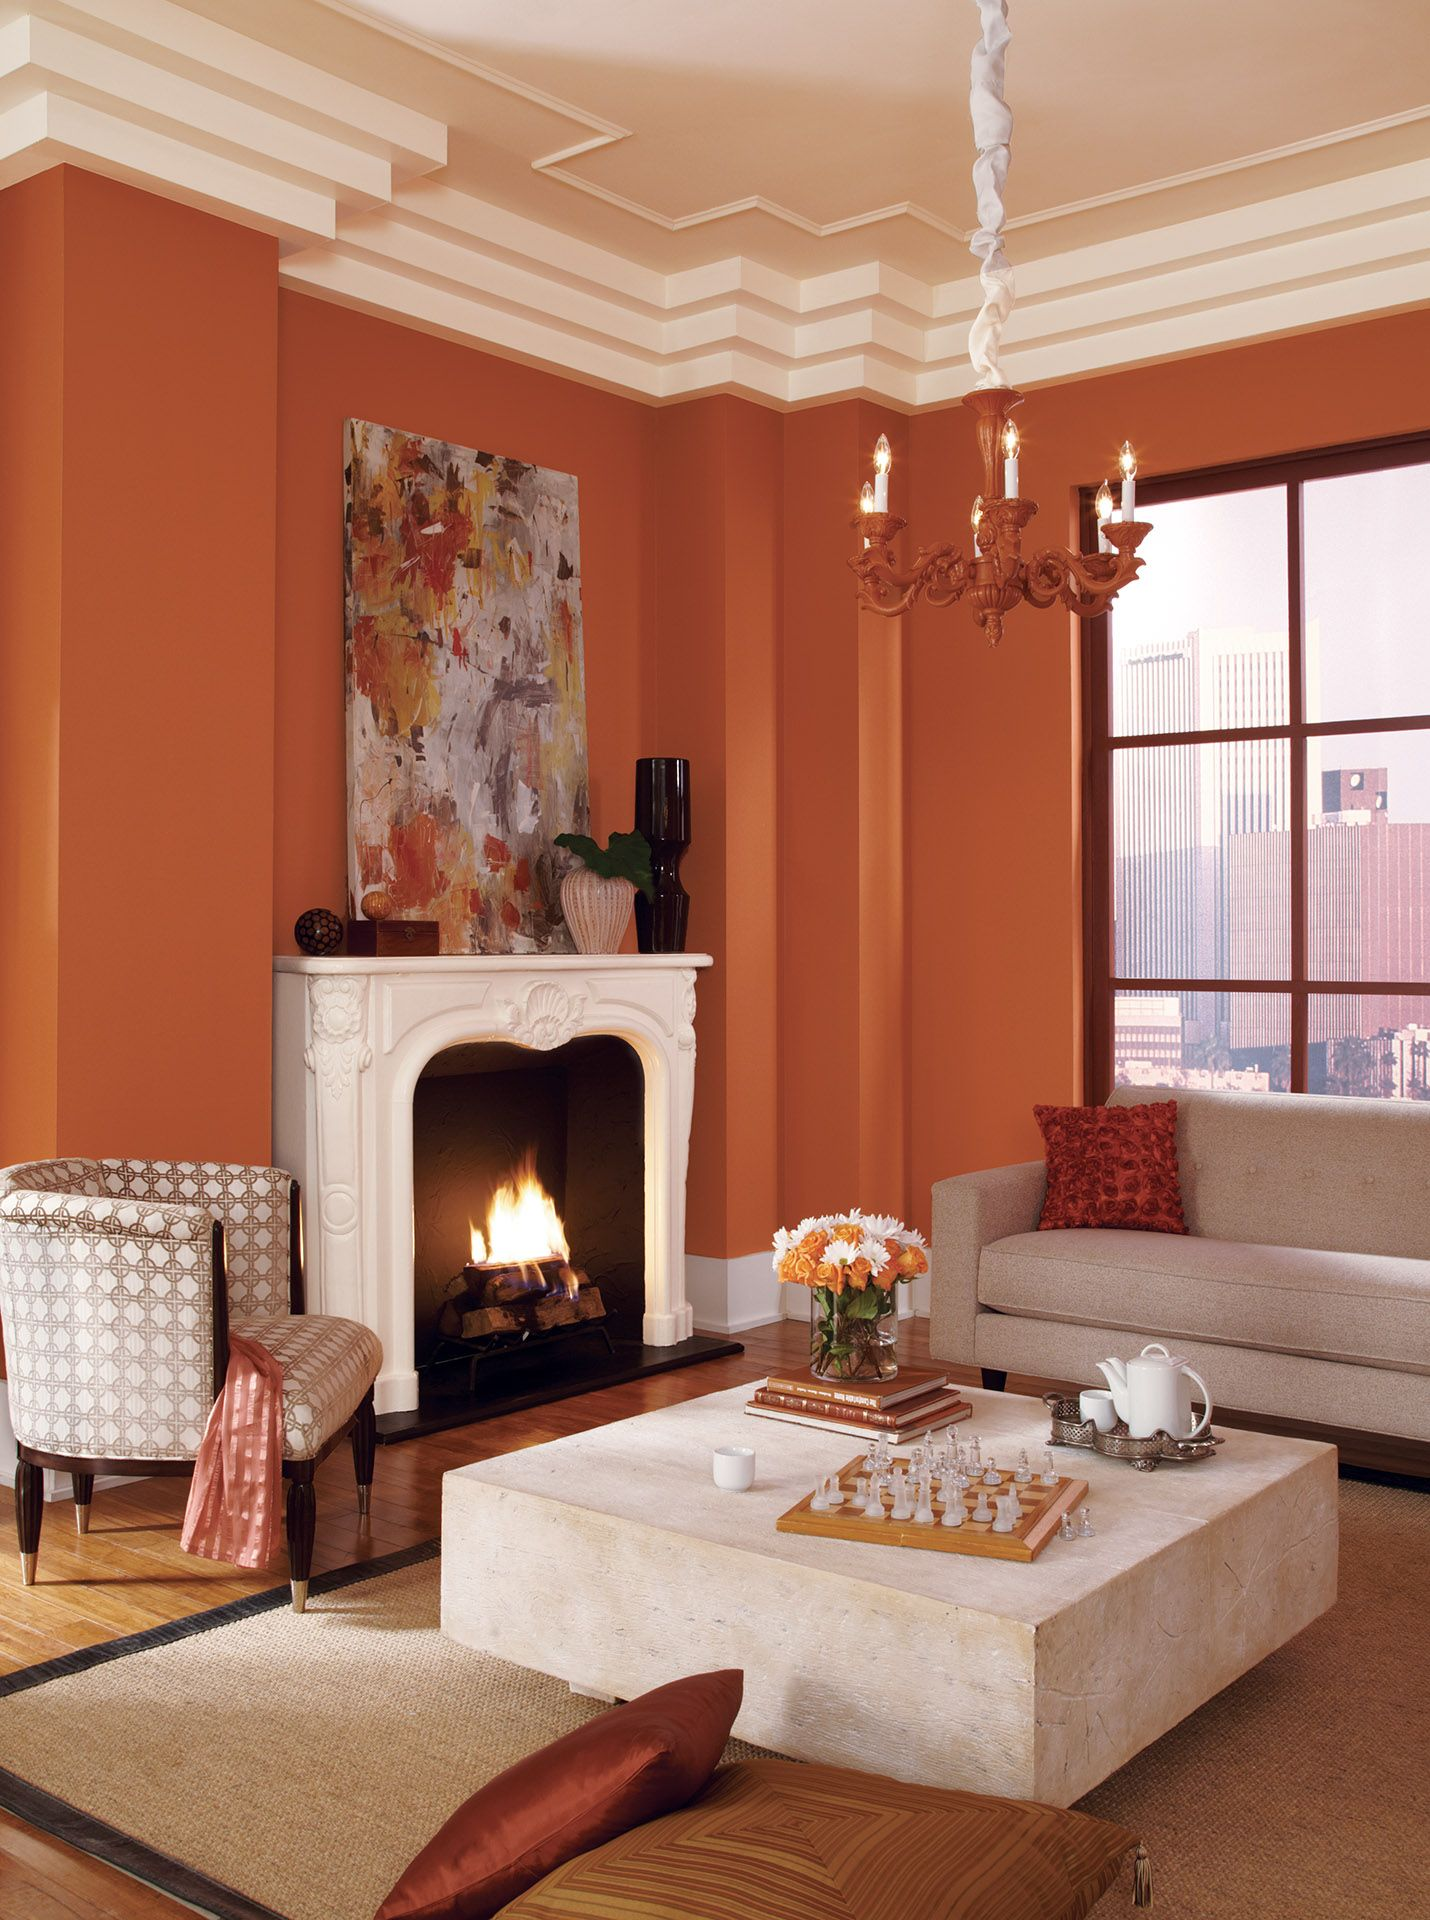 Autumn Living Room Decorating: Color On Wall: Autumn Stroll 10A-4 Color On Trim: Linen CW